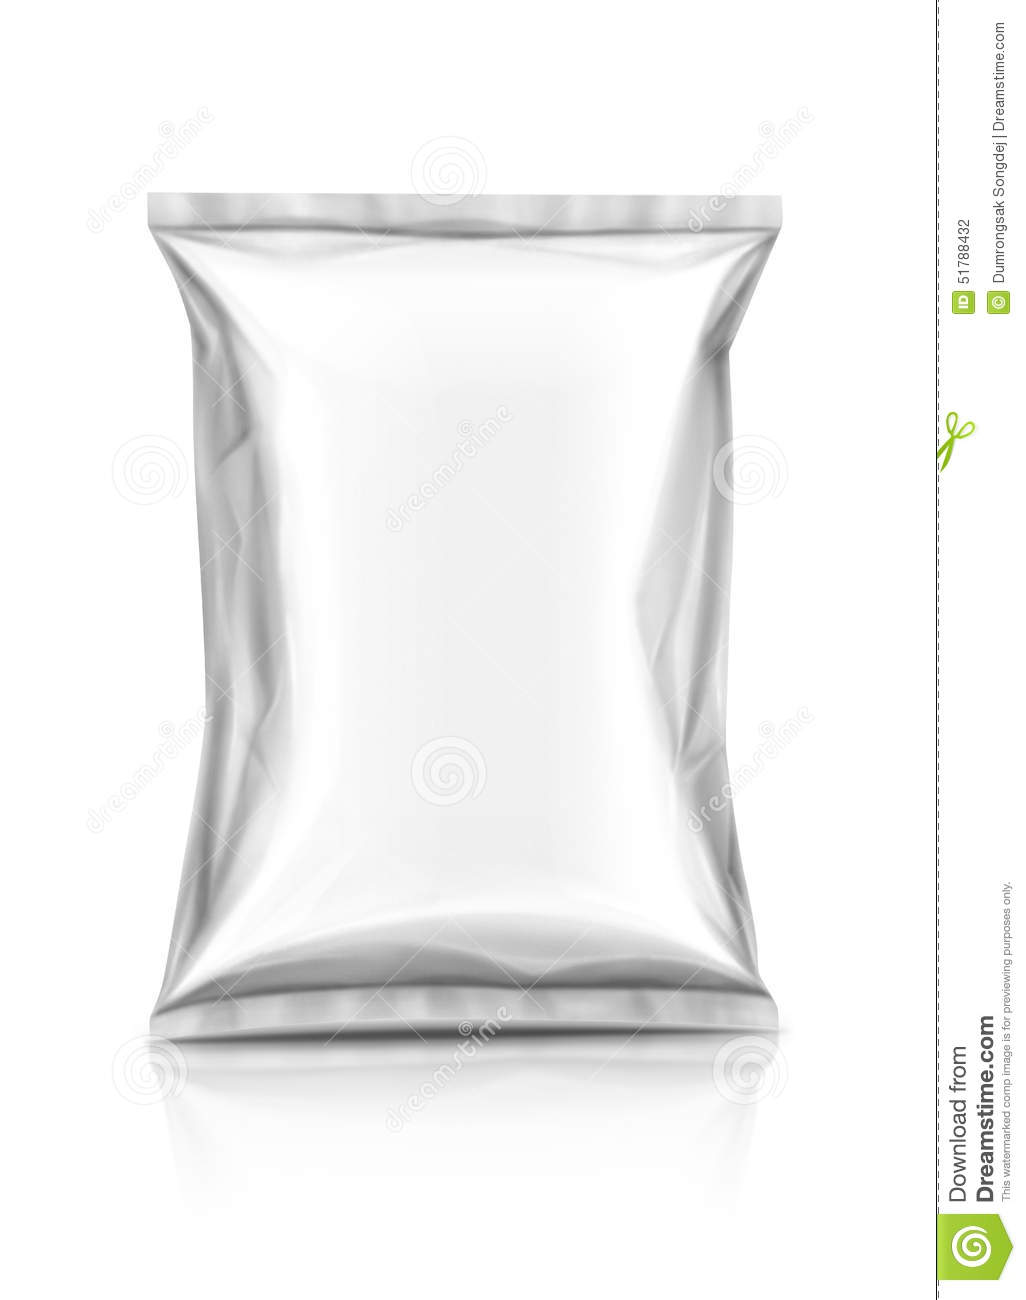 Blank snack packaging pouch